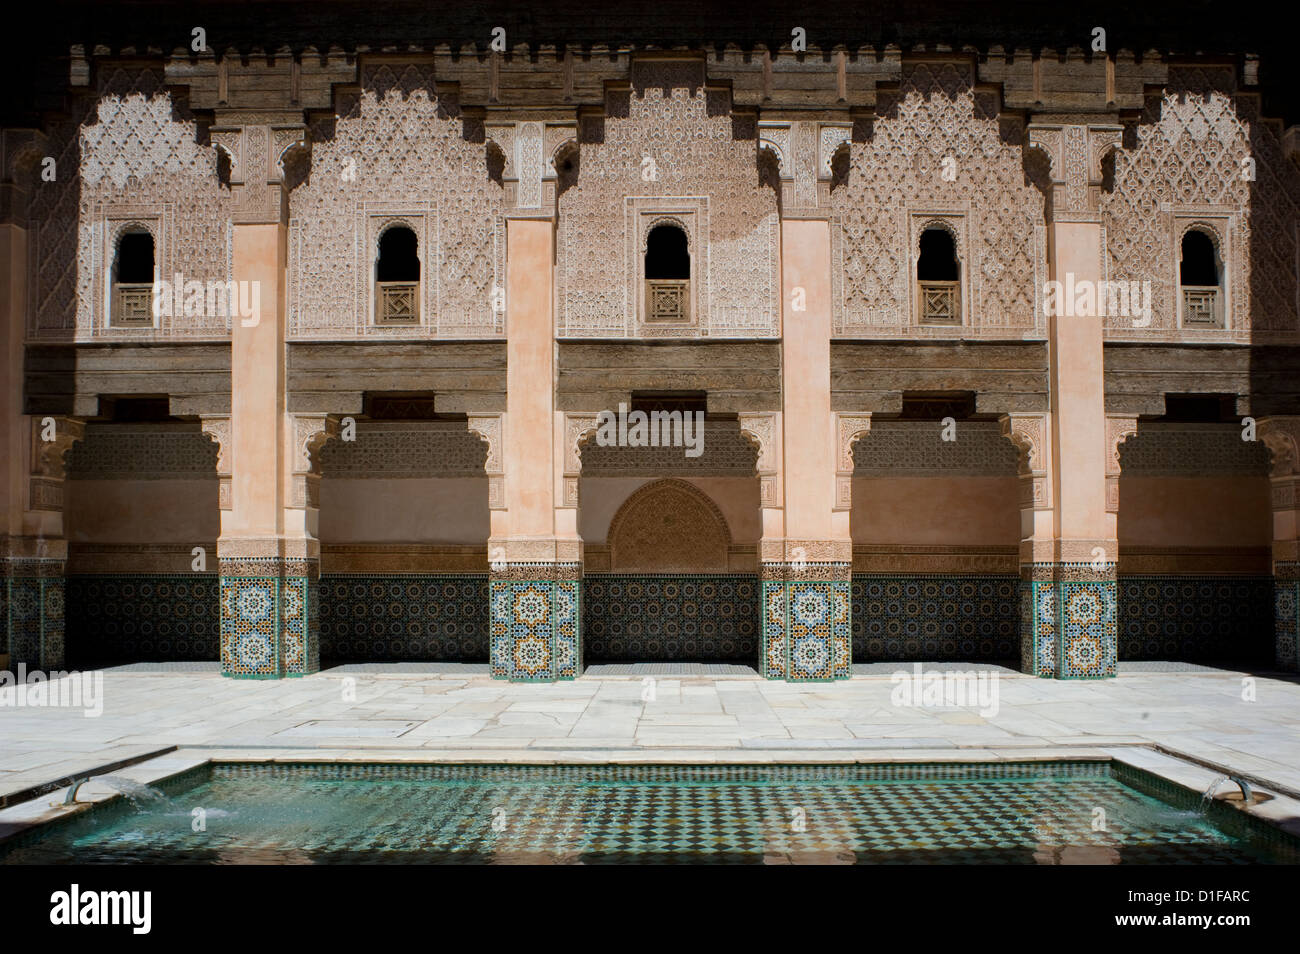 A tiled interior courtyard and reflecting pool at the Ben Youssef Madrassa, Marrakech, Morocco, North Africa, Africa - Stock Image